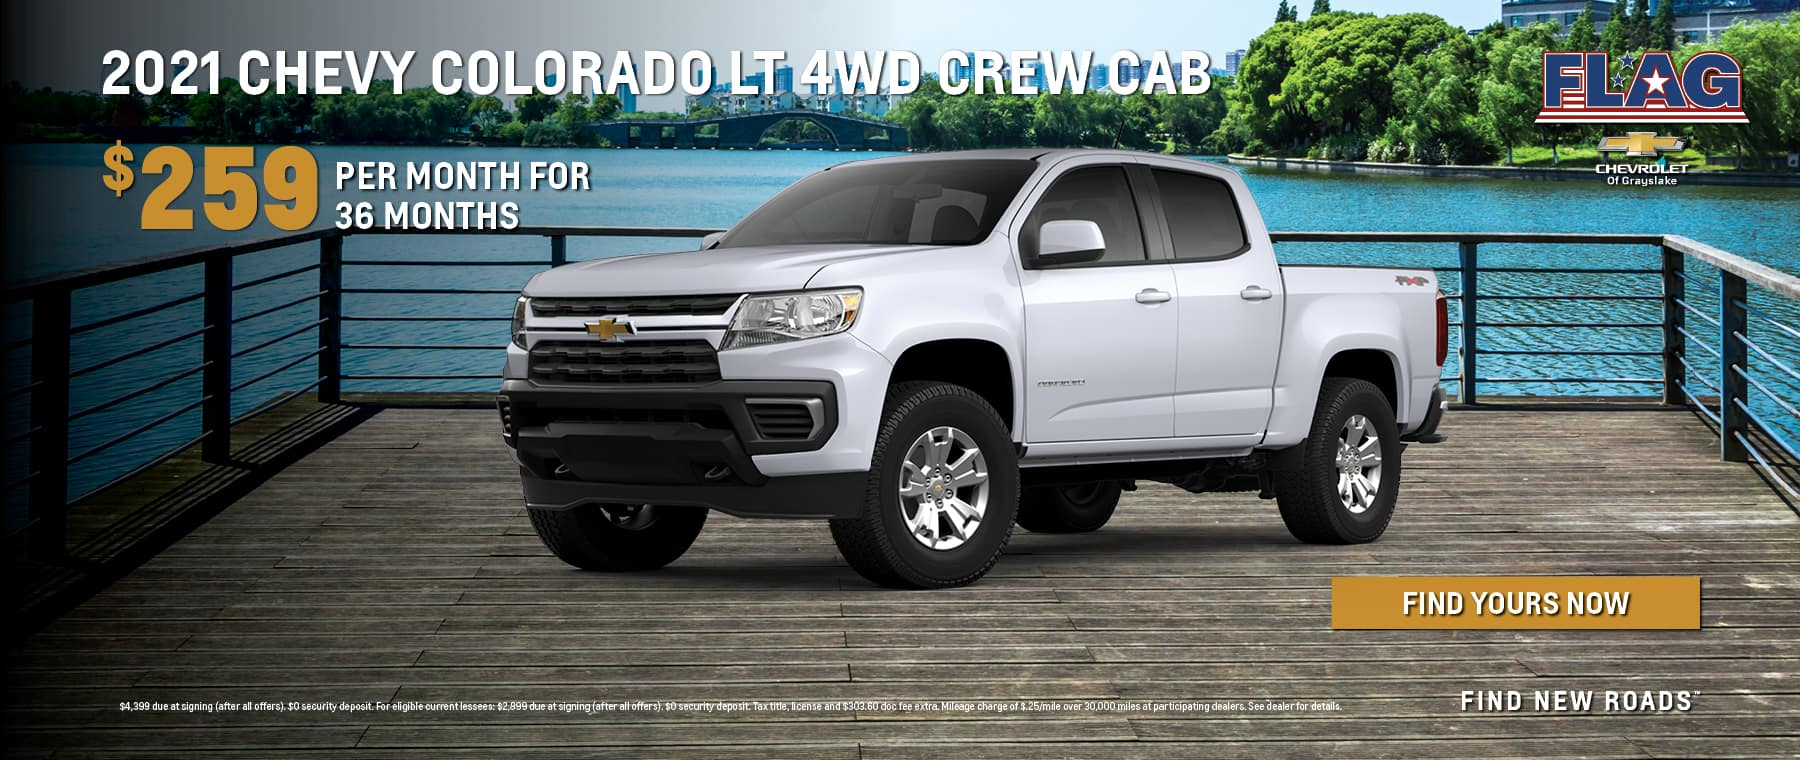 $259 per month for 36 months on 2021 Chevy Colorado LT 4WD Crew Cab